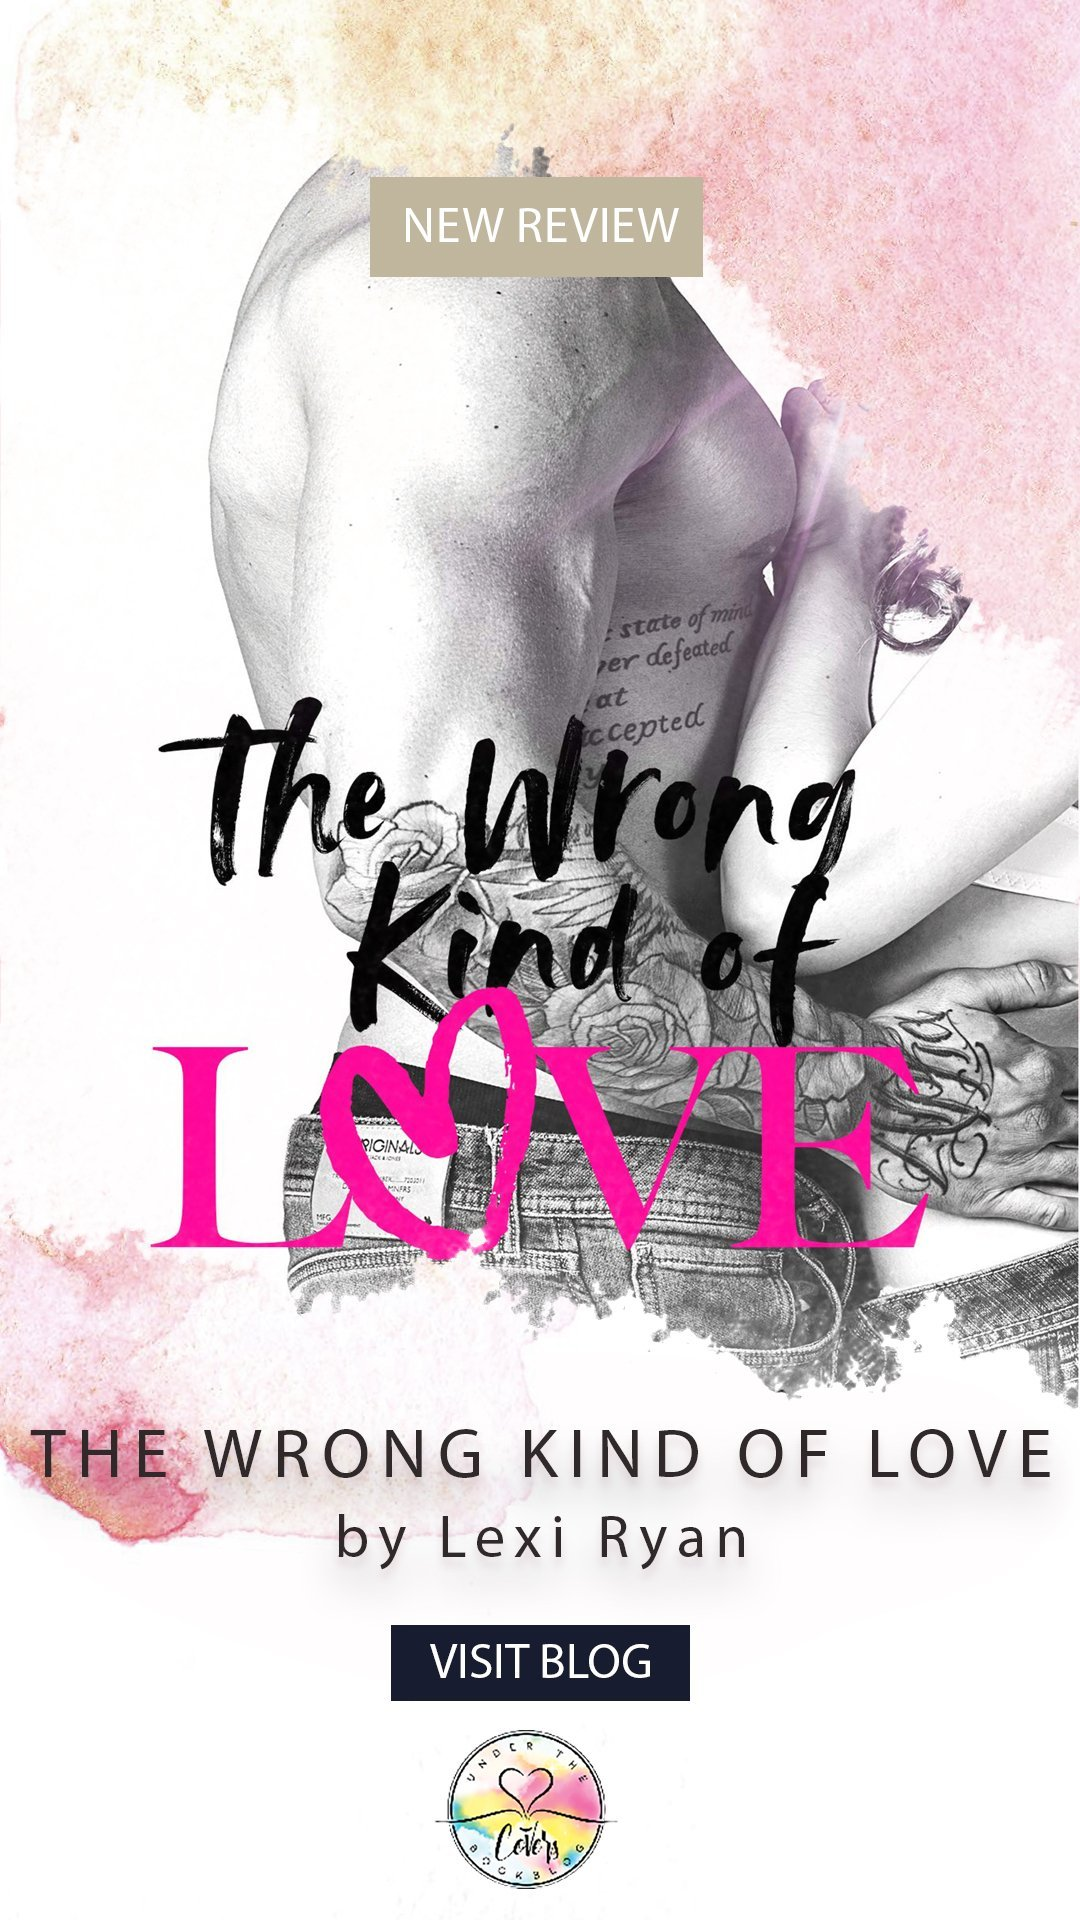 Review: The Wrong Kind of Love by Lexi Ryan